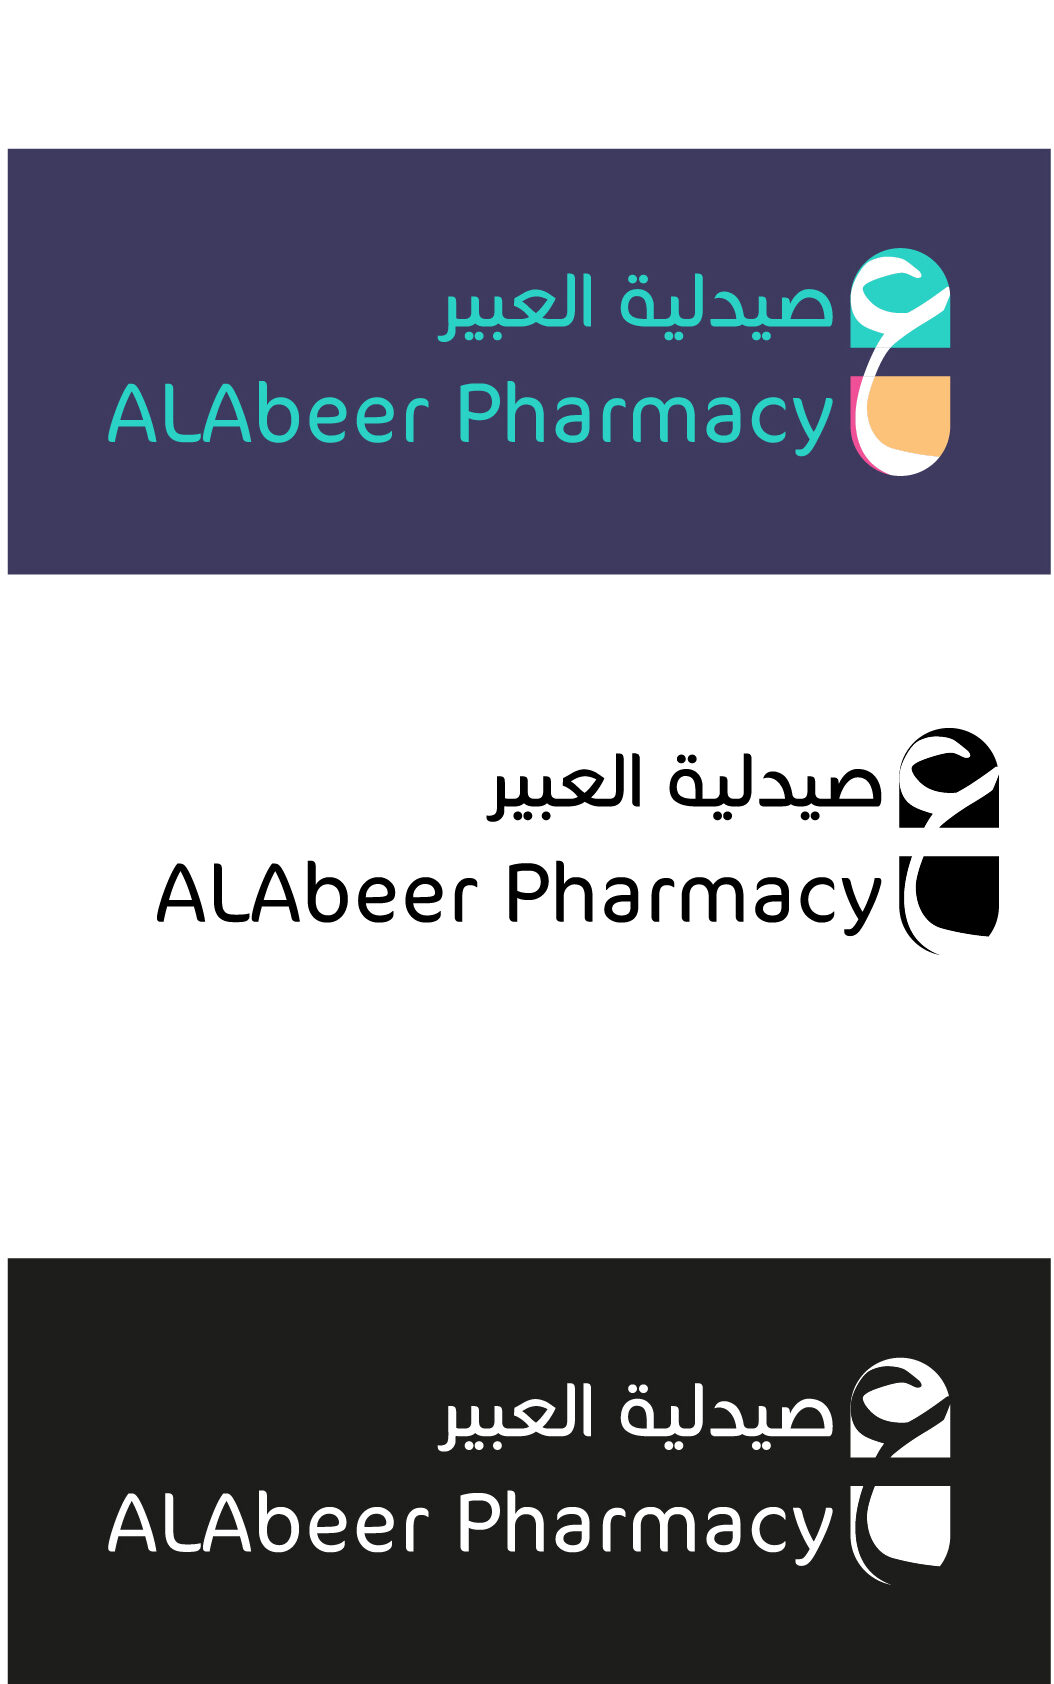 alabeer pharmacy logo variations colors and background